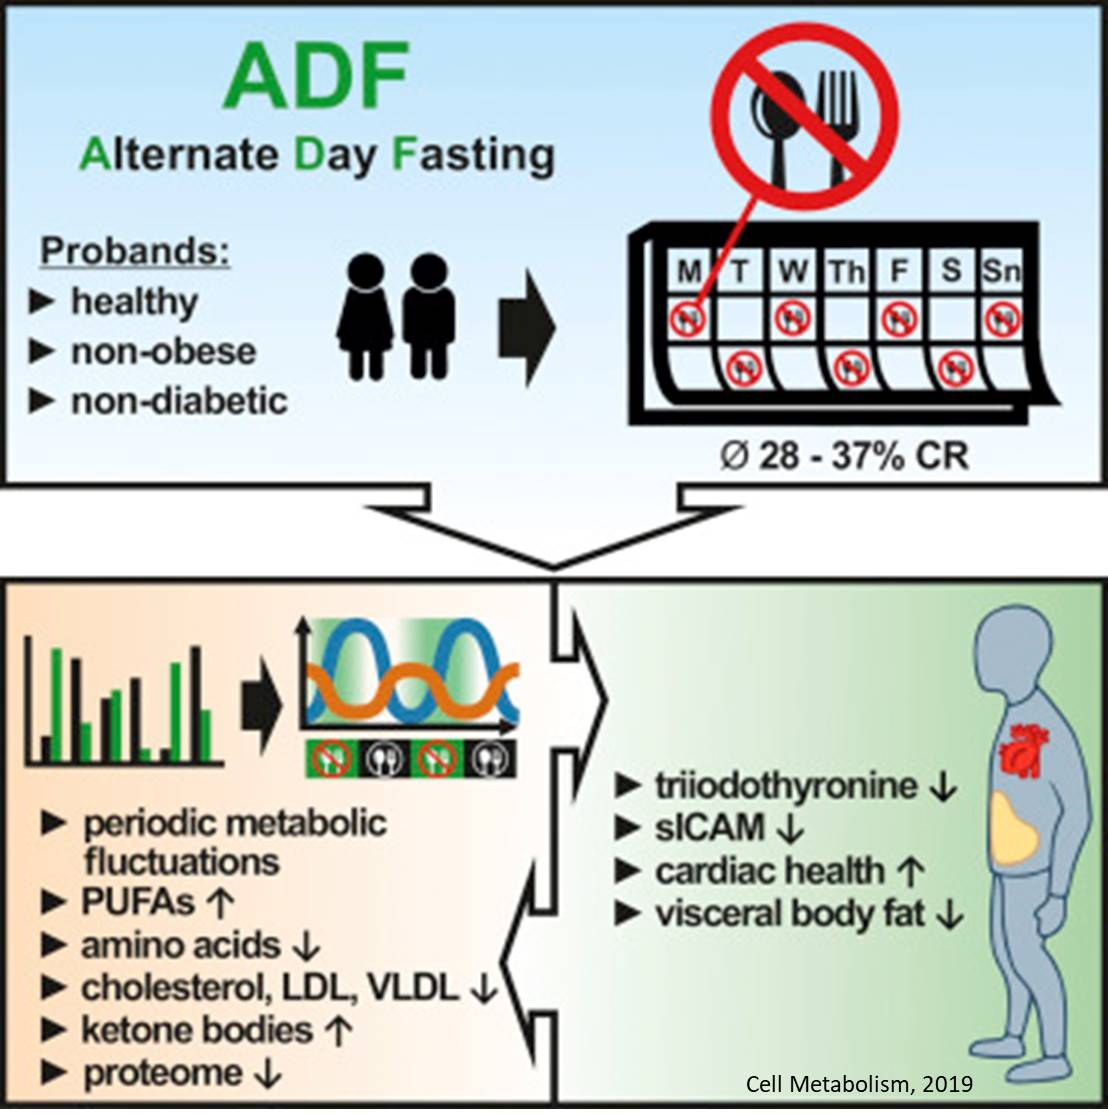 Is alternate-day fasting a safe alternative to caloric restriction?